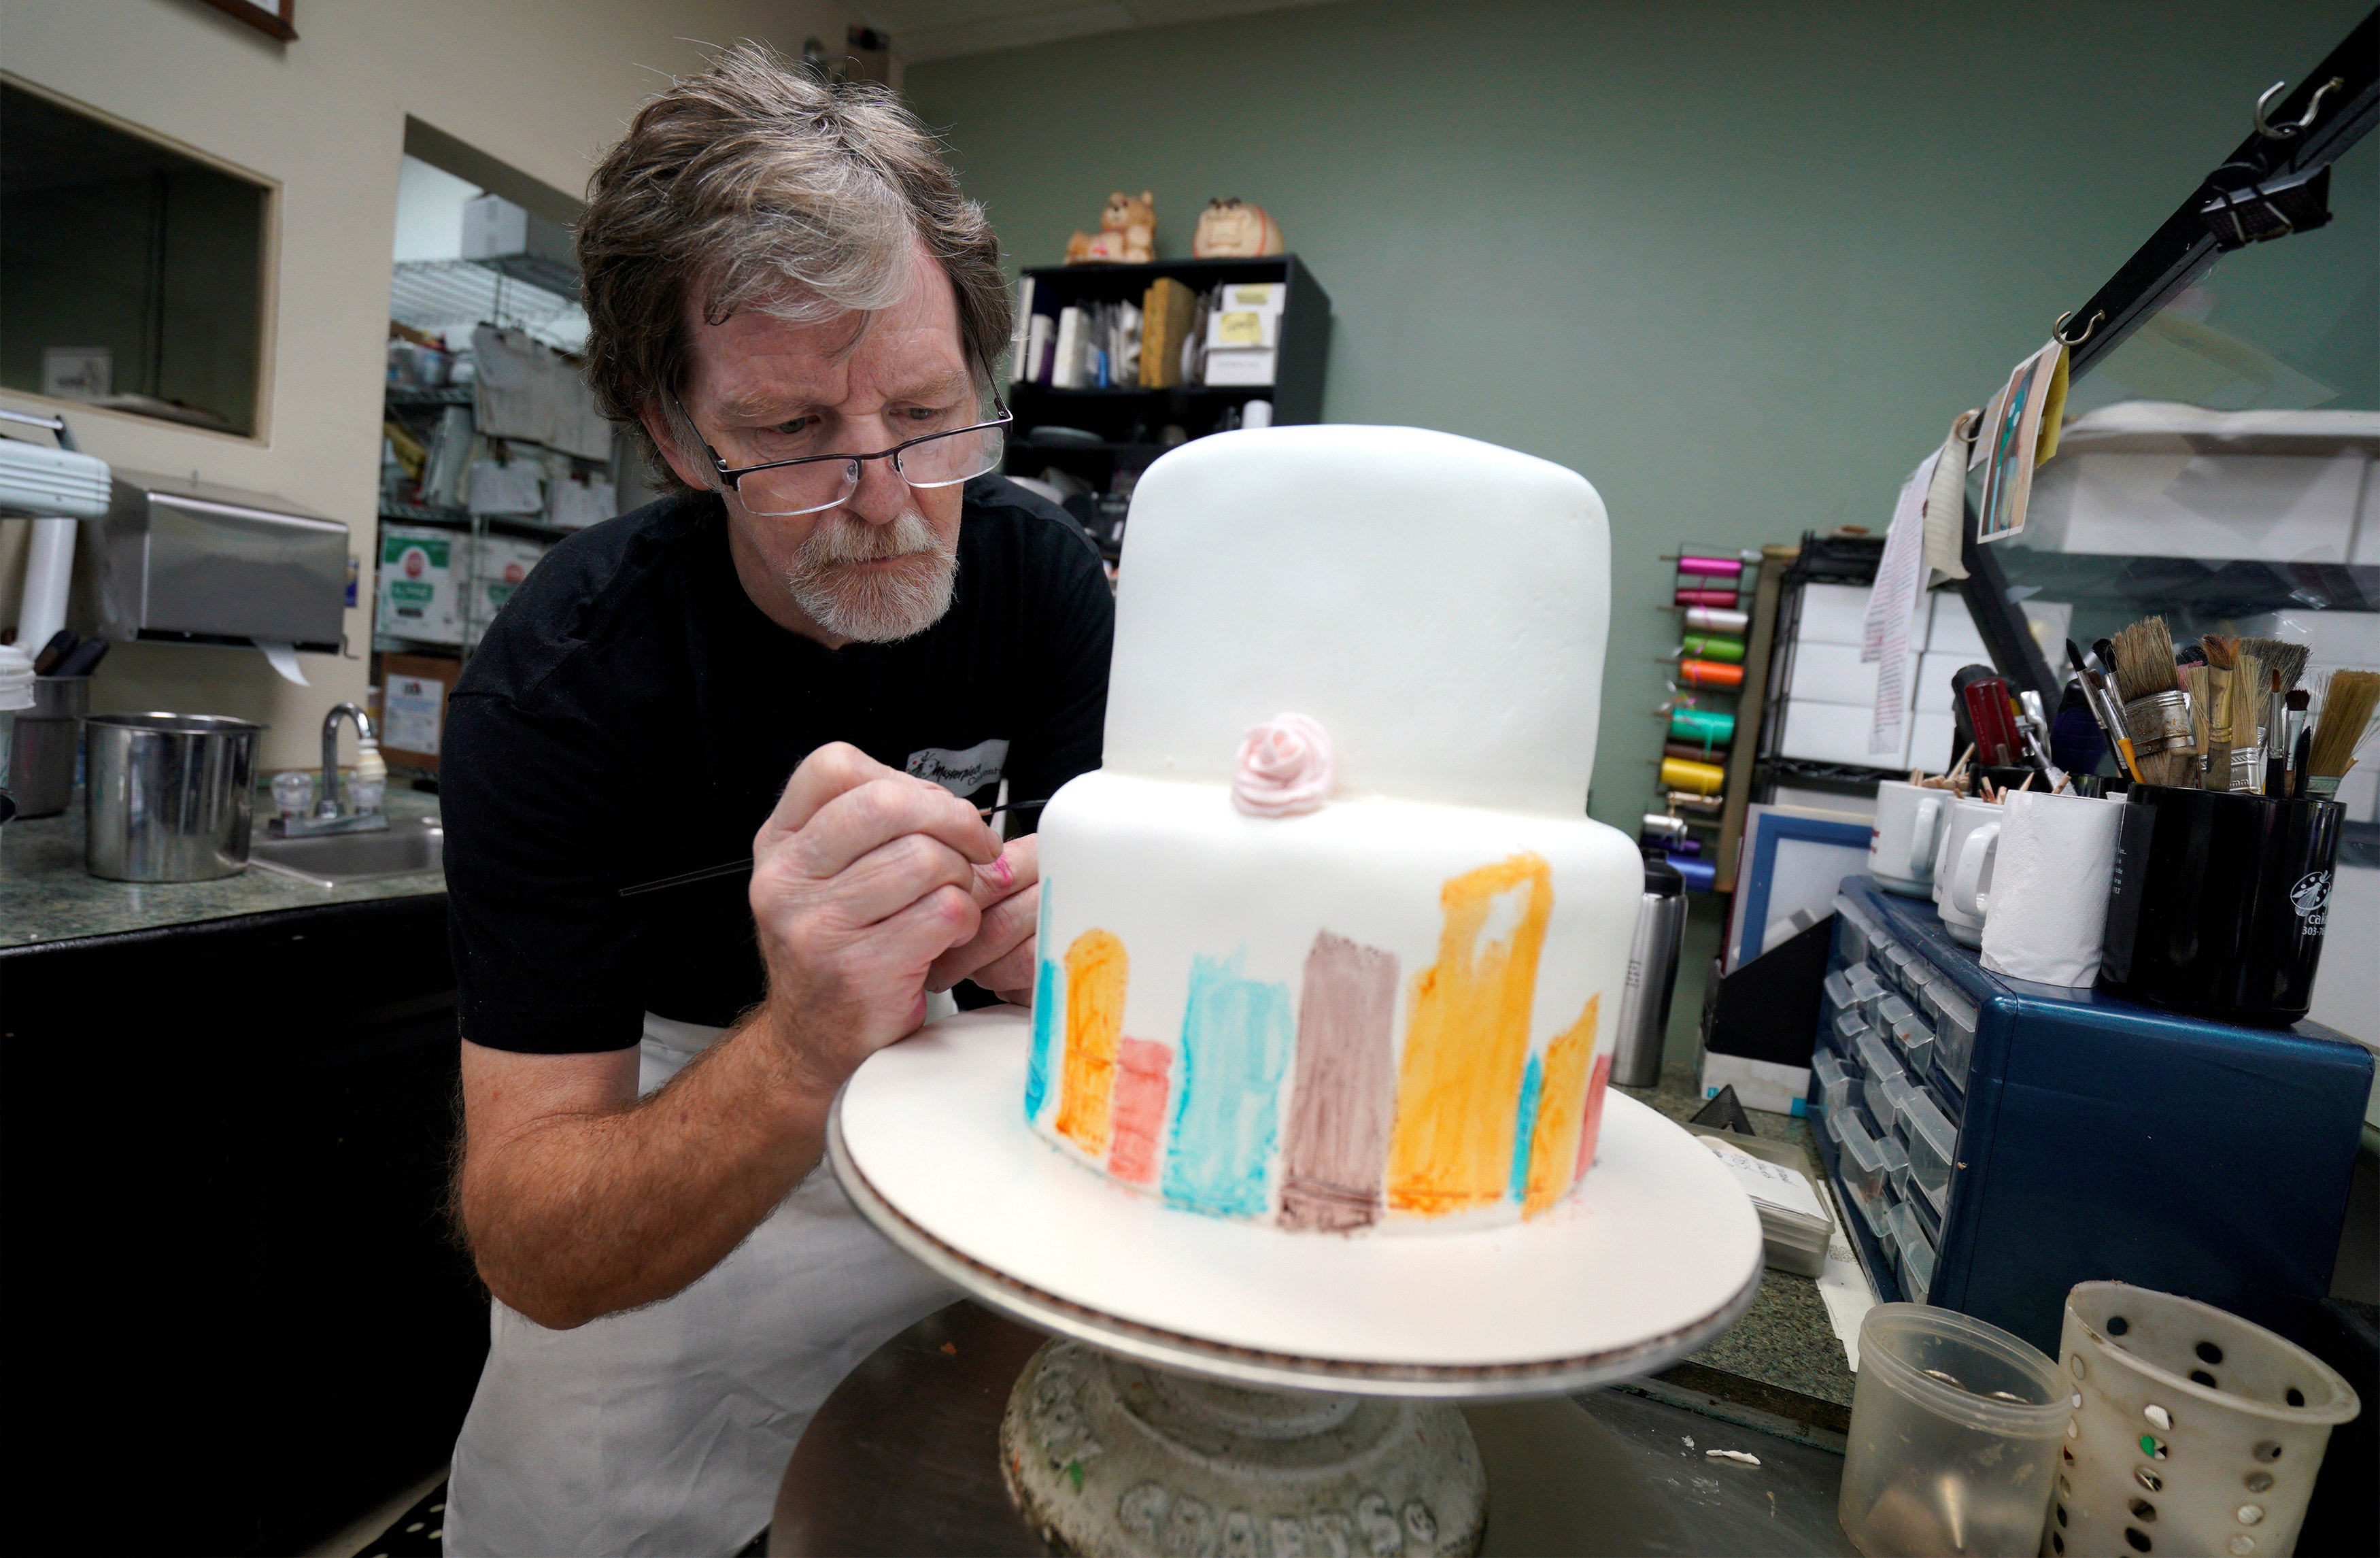 Top court weighs baker's refusal to make cake for gay couple